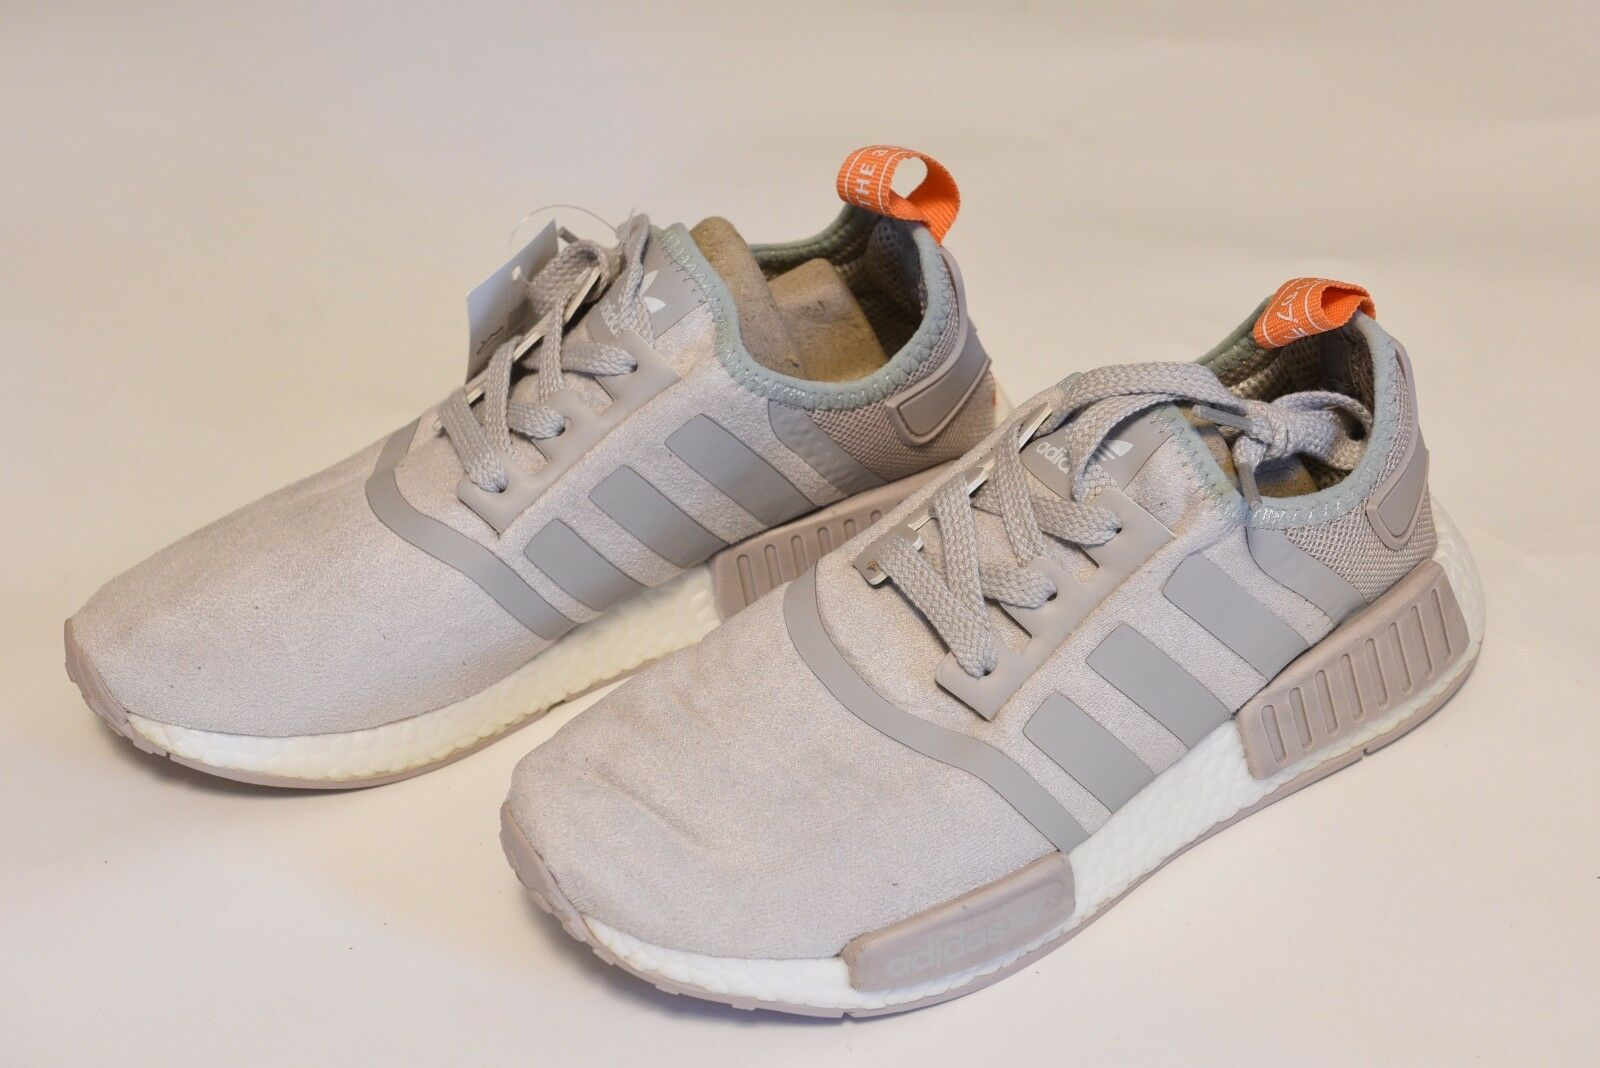 ADIDAS NMD RUNNER GREY SALMON PINK SIZE 7